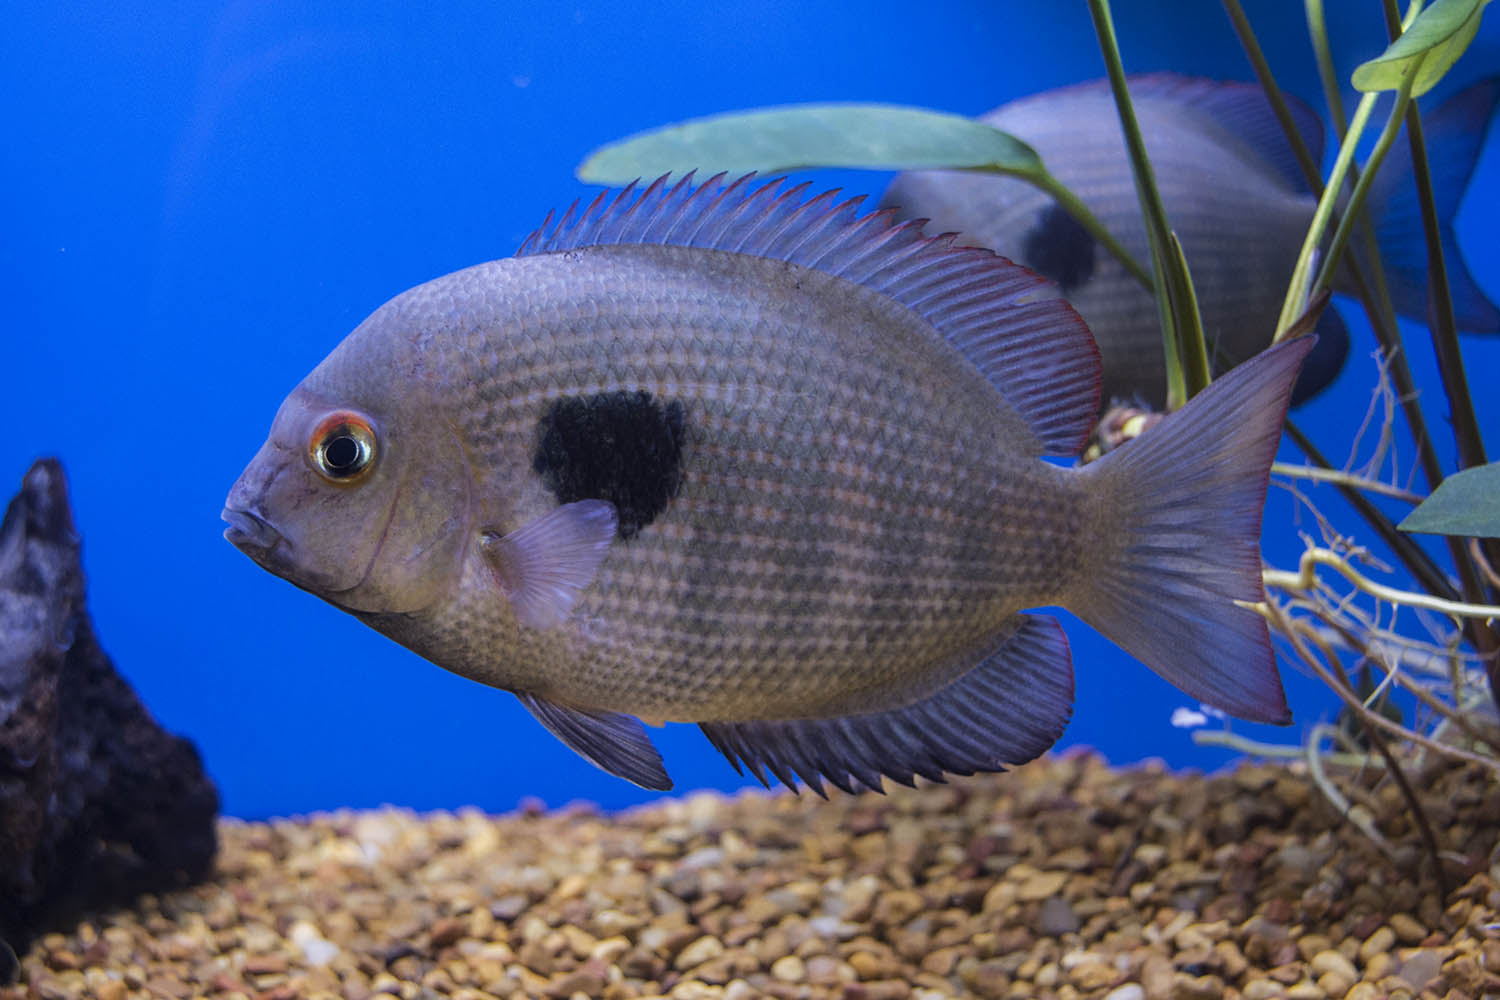 One of Madagascar's beautiful and endangered endemic cichlids, Paretroplus maculatus, on display from Old World Exotic Fish